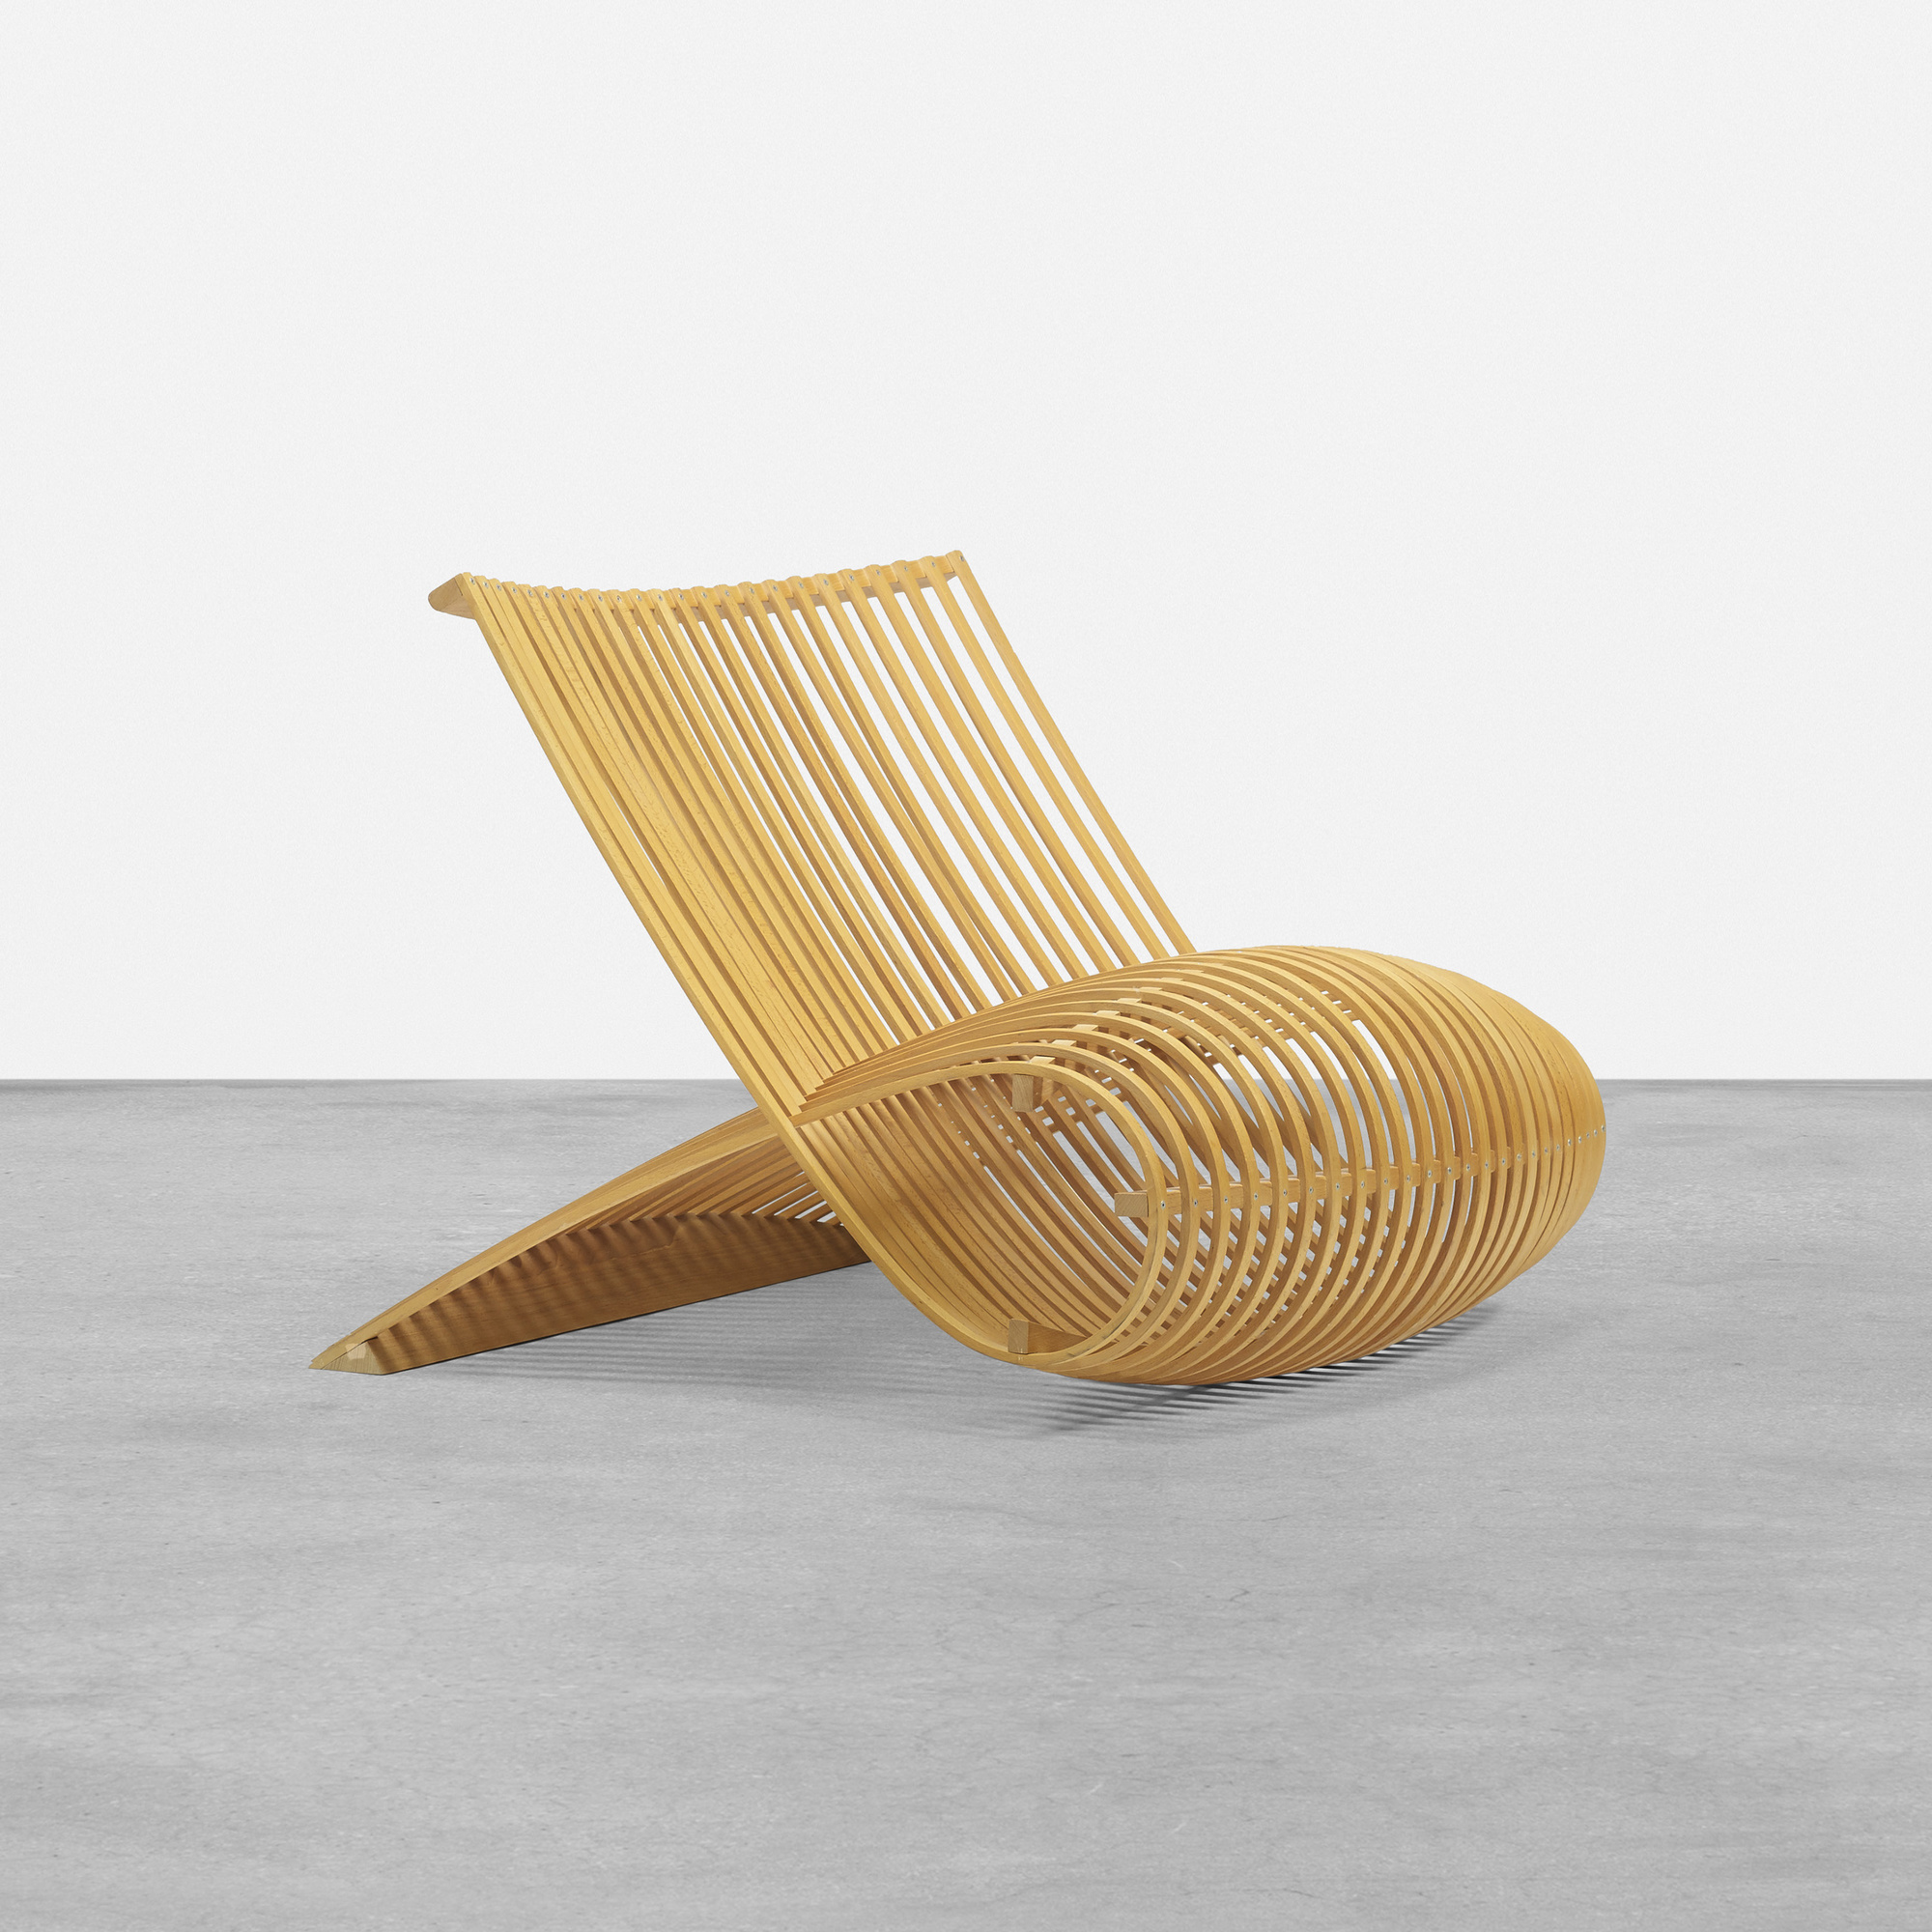 281 marc newson wooden chair for Marc newson wooden chair